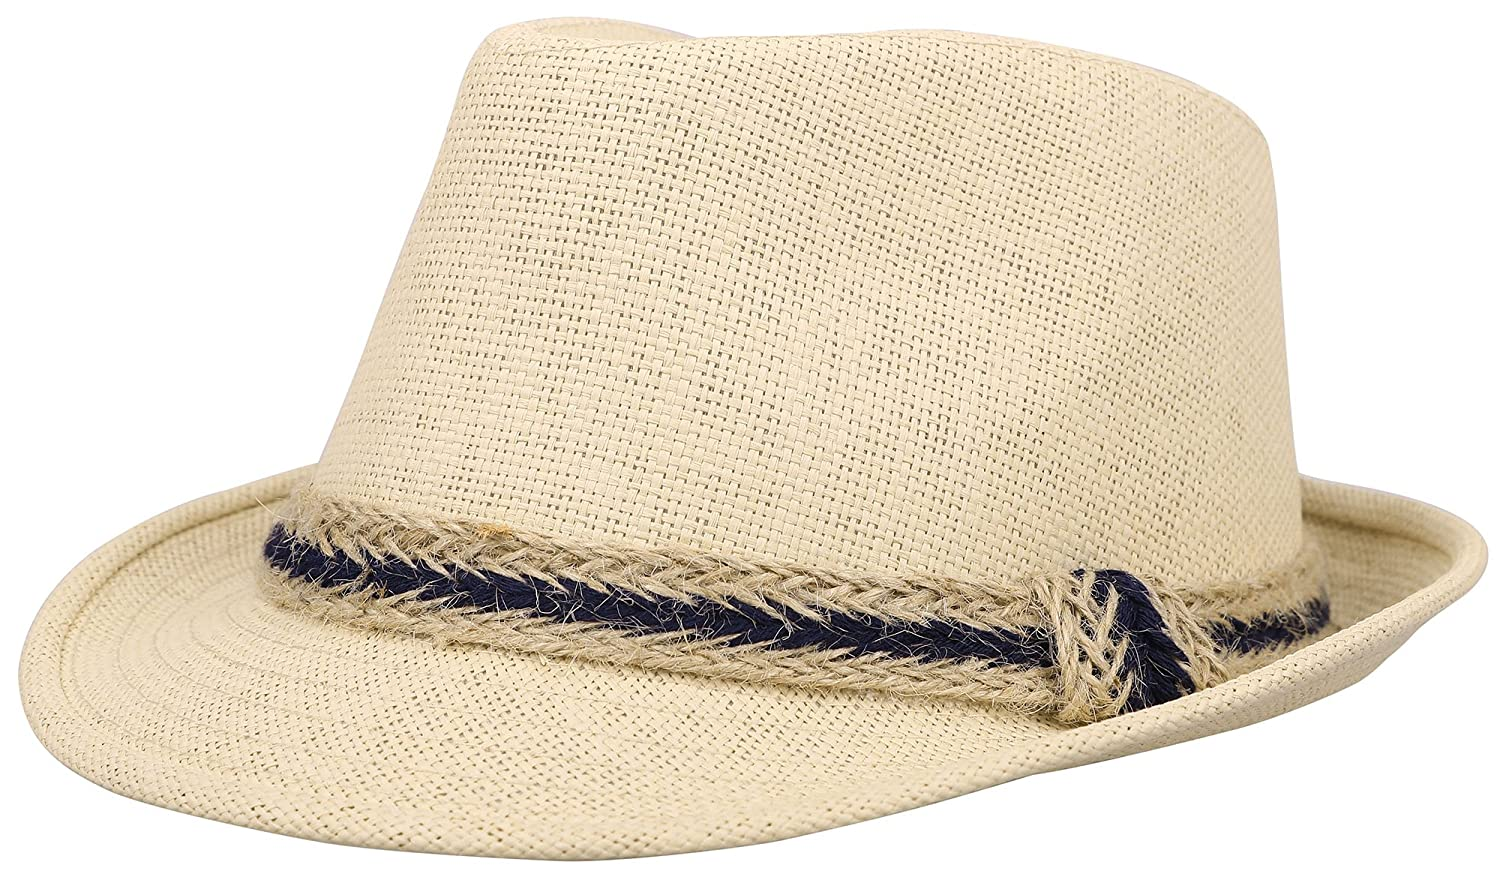 e18ee2c0 Our straw fedora hat is the perfect hat to top off your summer outfits. It  is made of 100 %paper straw that is lightweight, breathable, and durable.